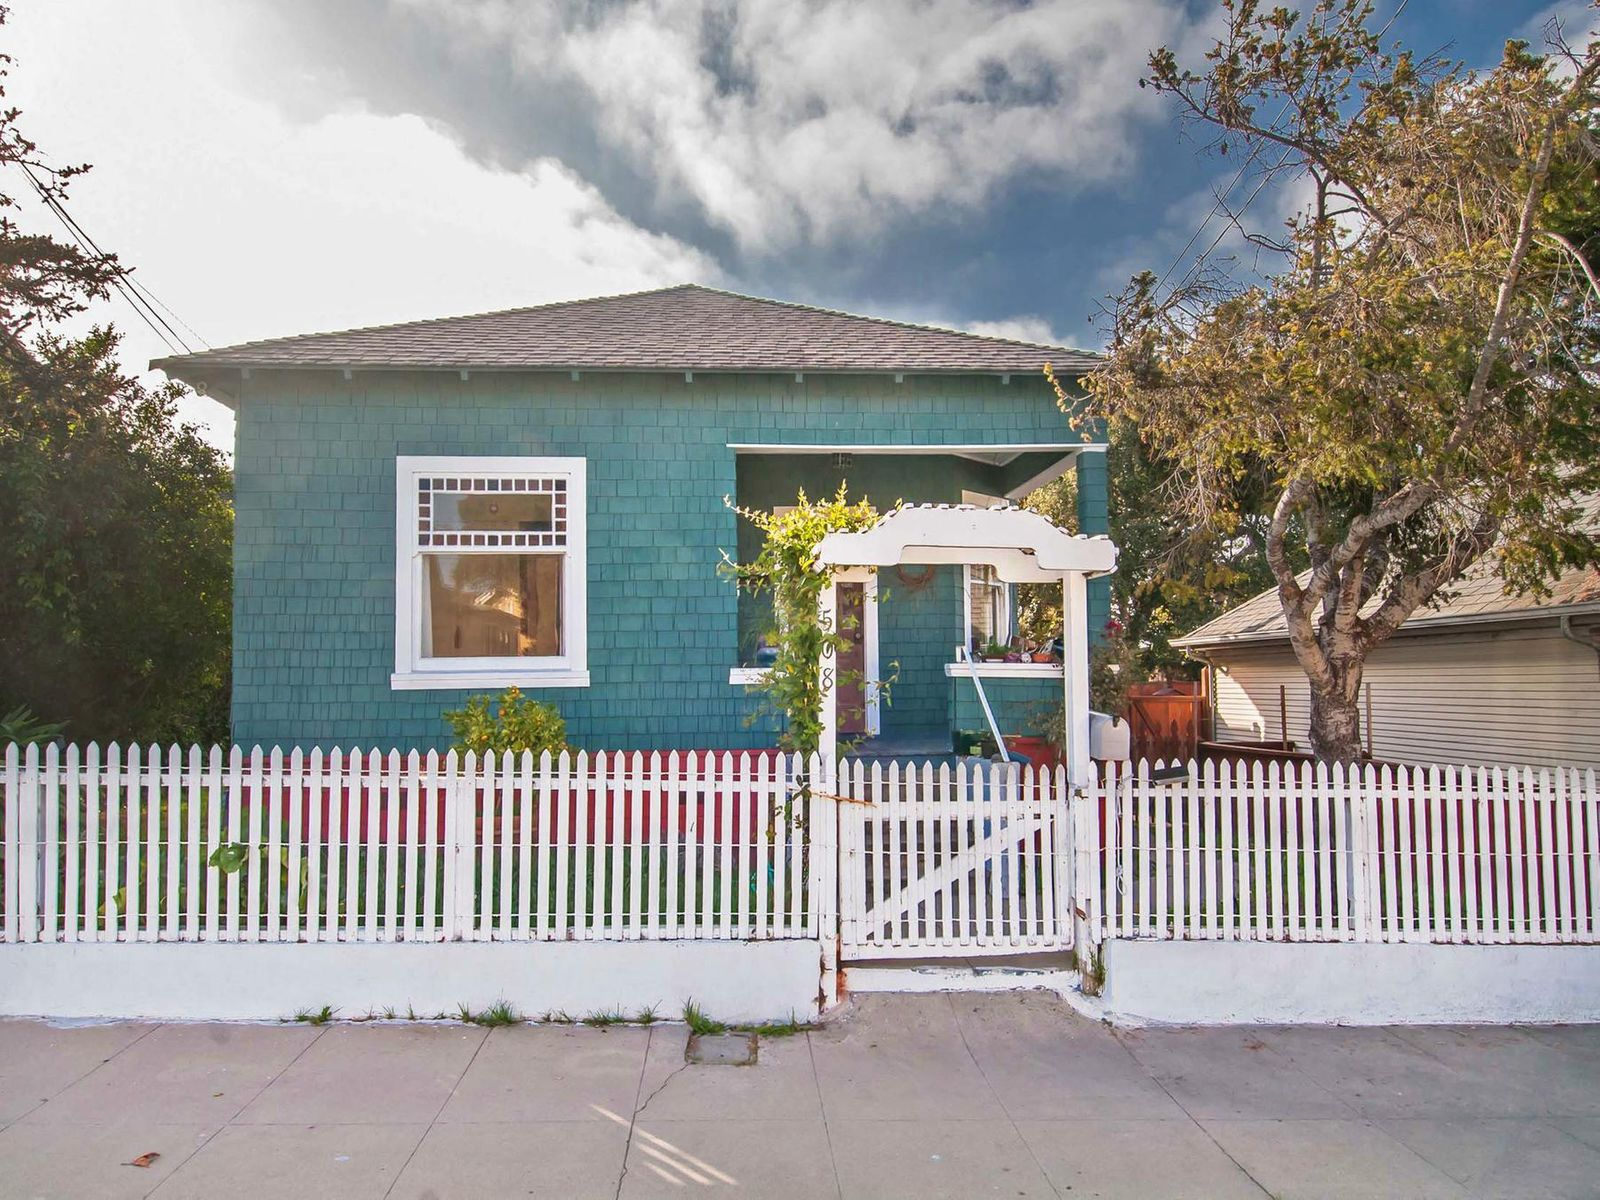 Pacific Grove Adorable Cottage, Pacific Grove CA Single Family Home - Monterey Real Estate